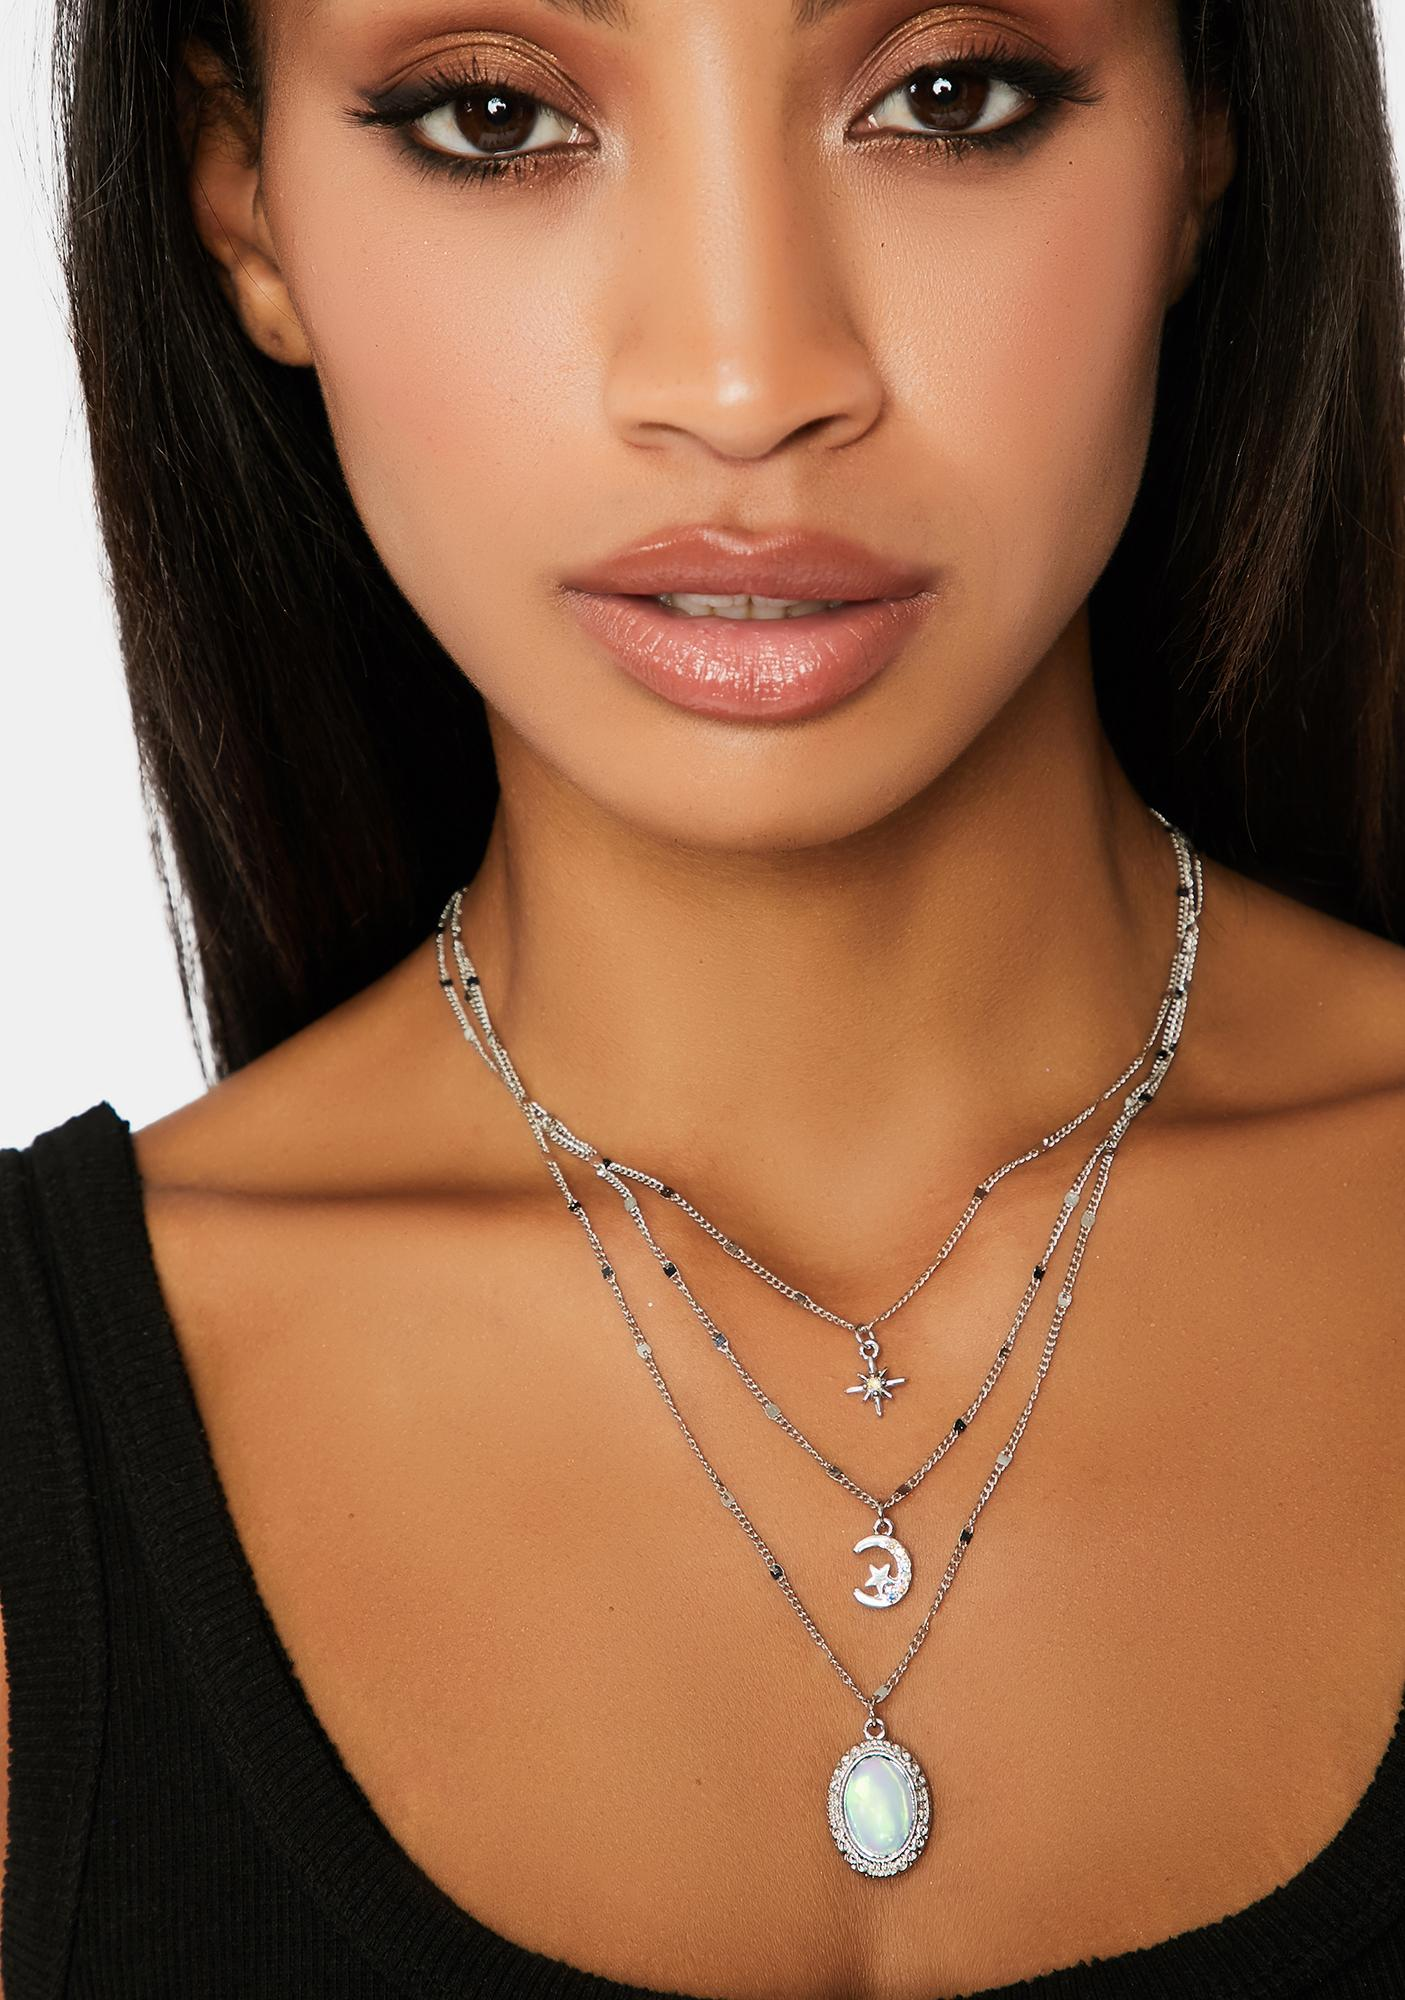 Fate In The Stars Layered Necklace